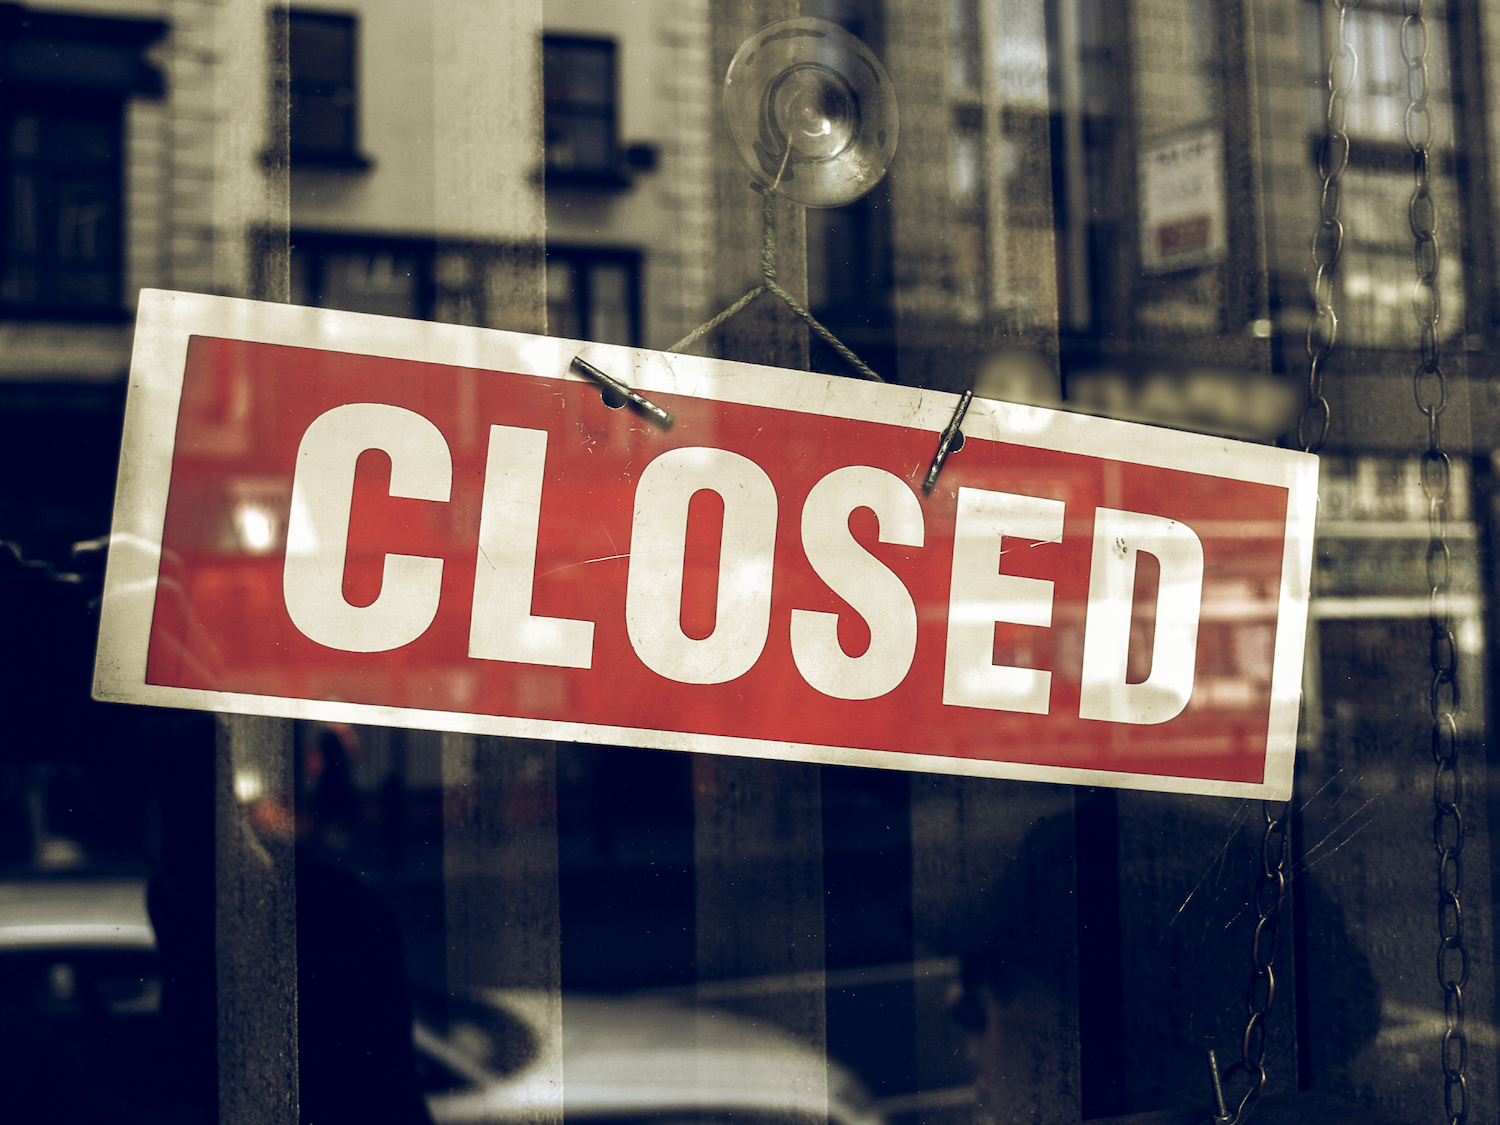 OTC Bitcoin Exchange Cointouch Shuts Down Citing Change In Regulations |